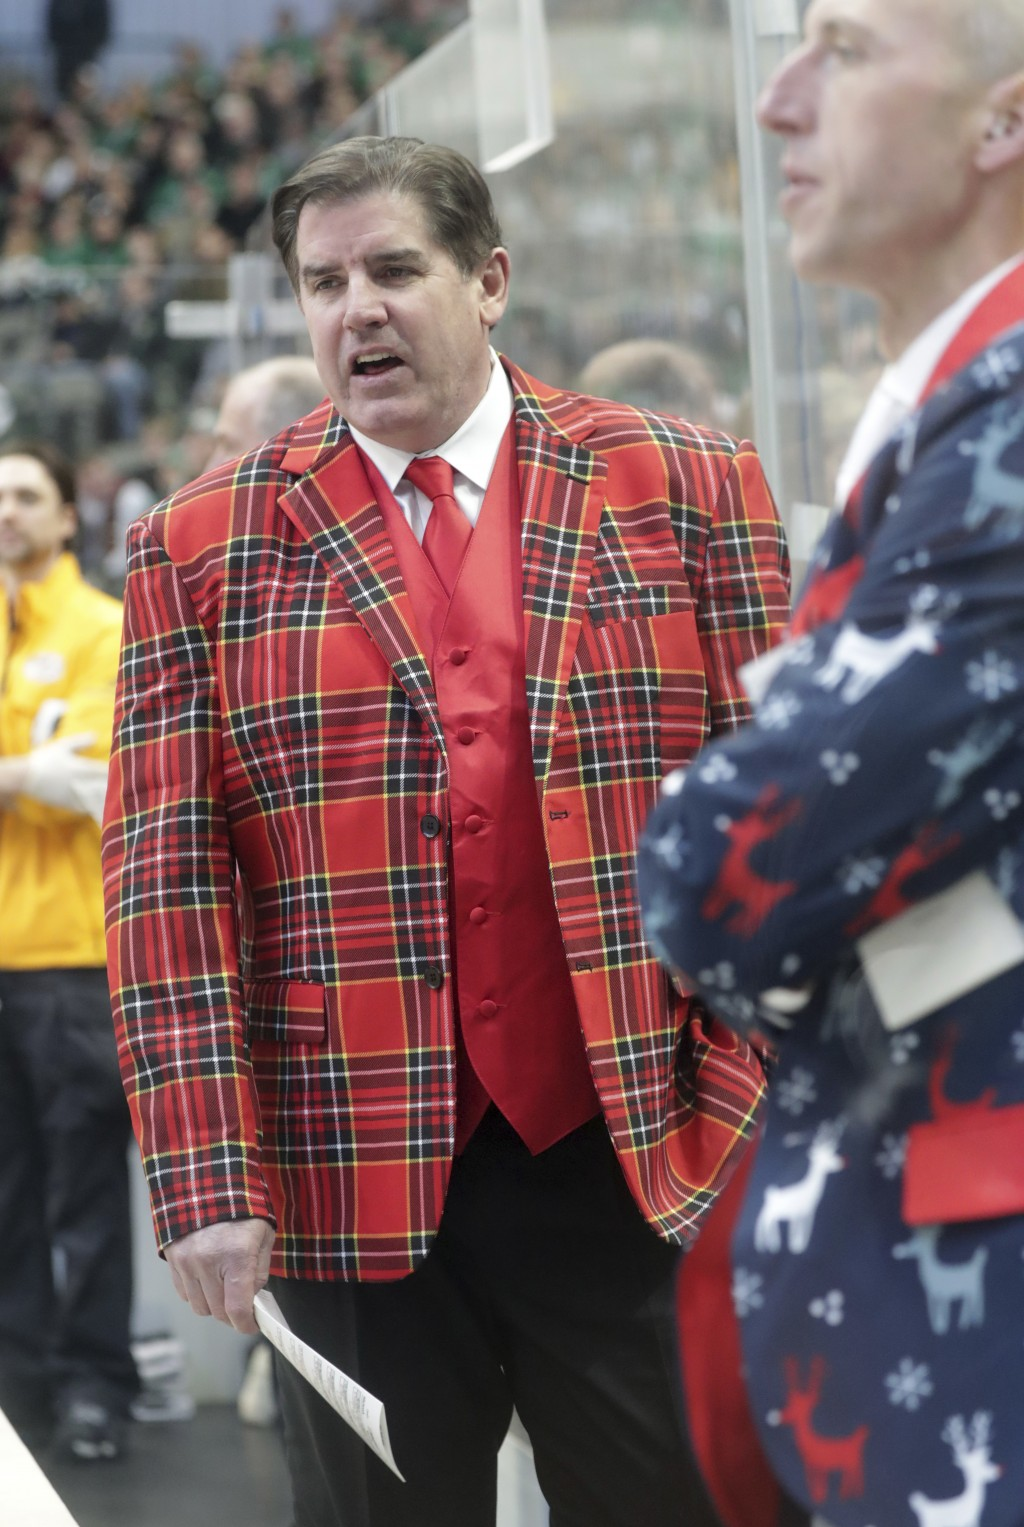 Nashville Predators head coach Peter Laviolette looks on from the bench during the first period of an NHL hockey game against the Dallas Stars in Dall...